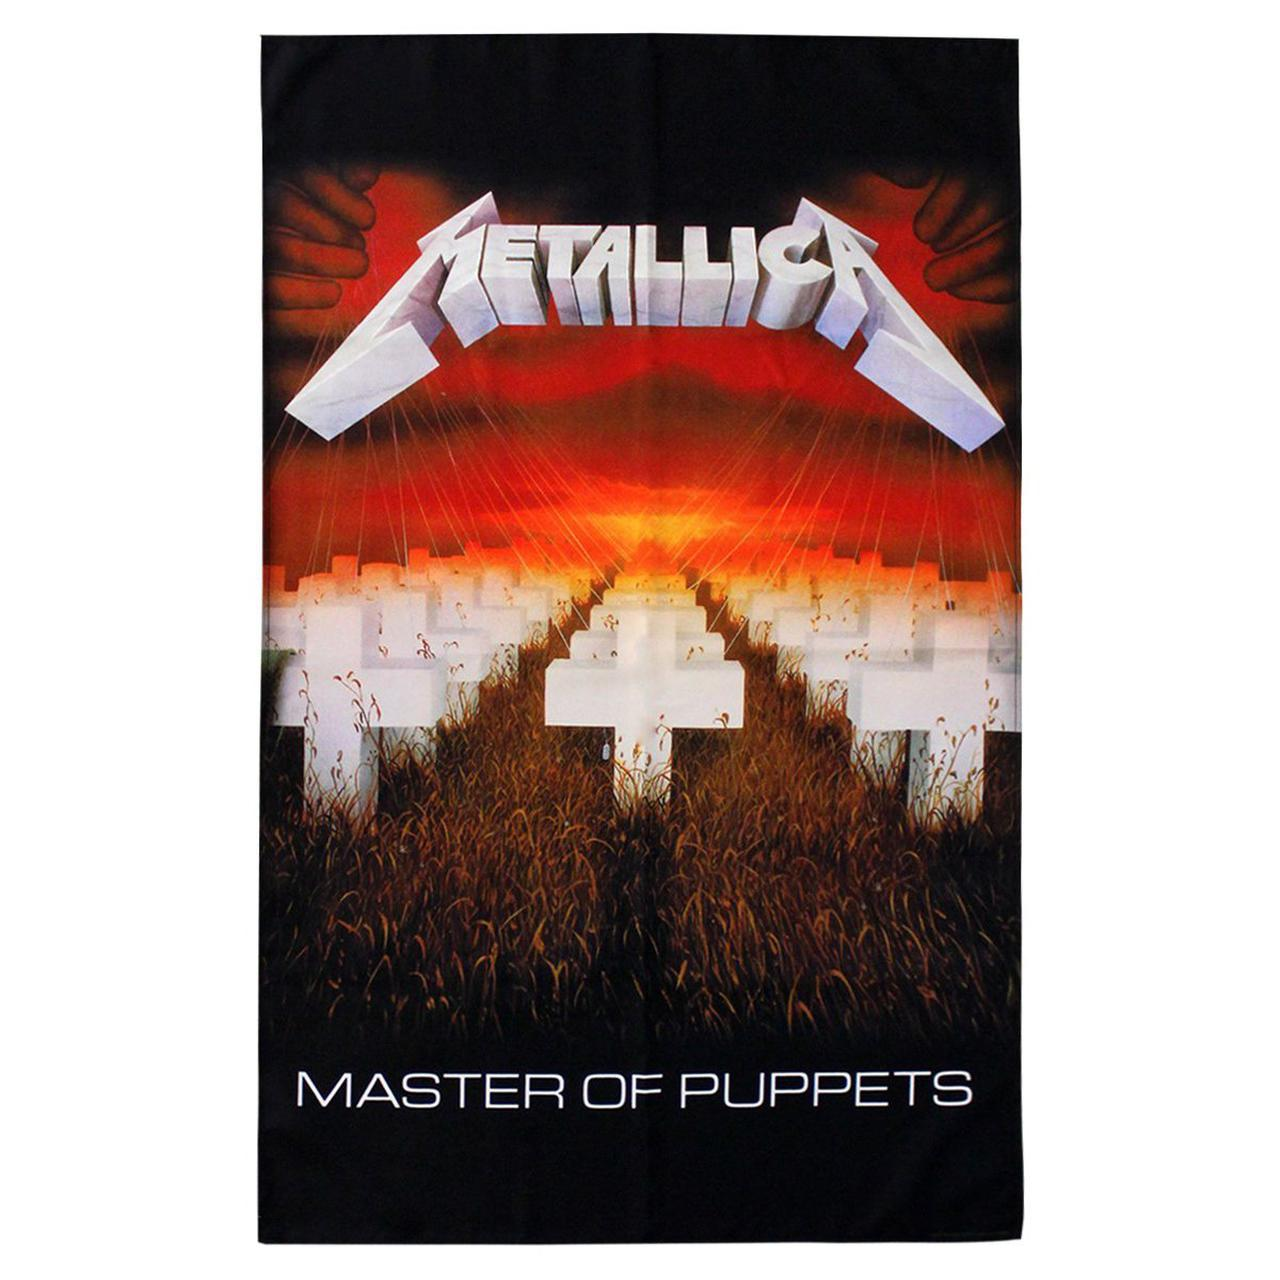 Hardwired to self destruct textile poster flag metallica official